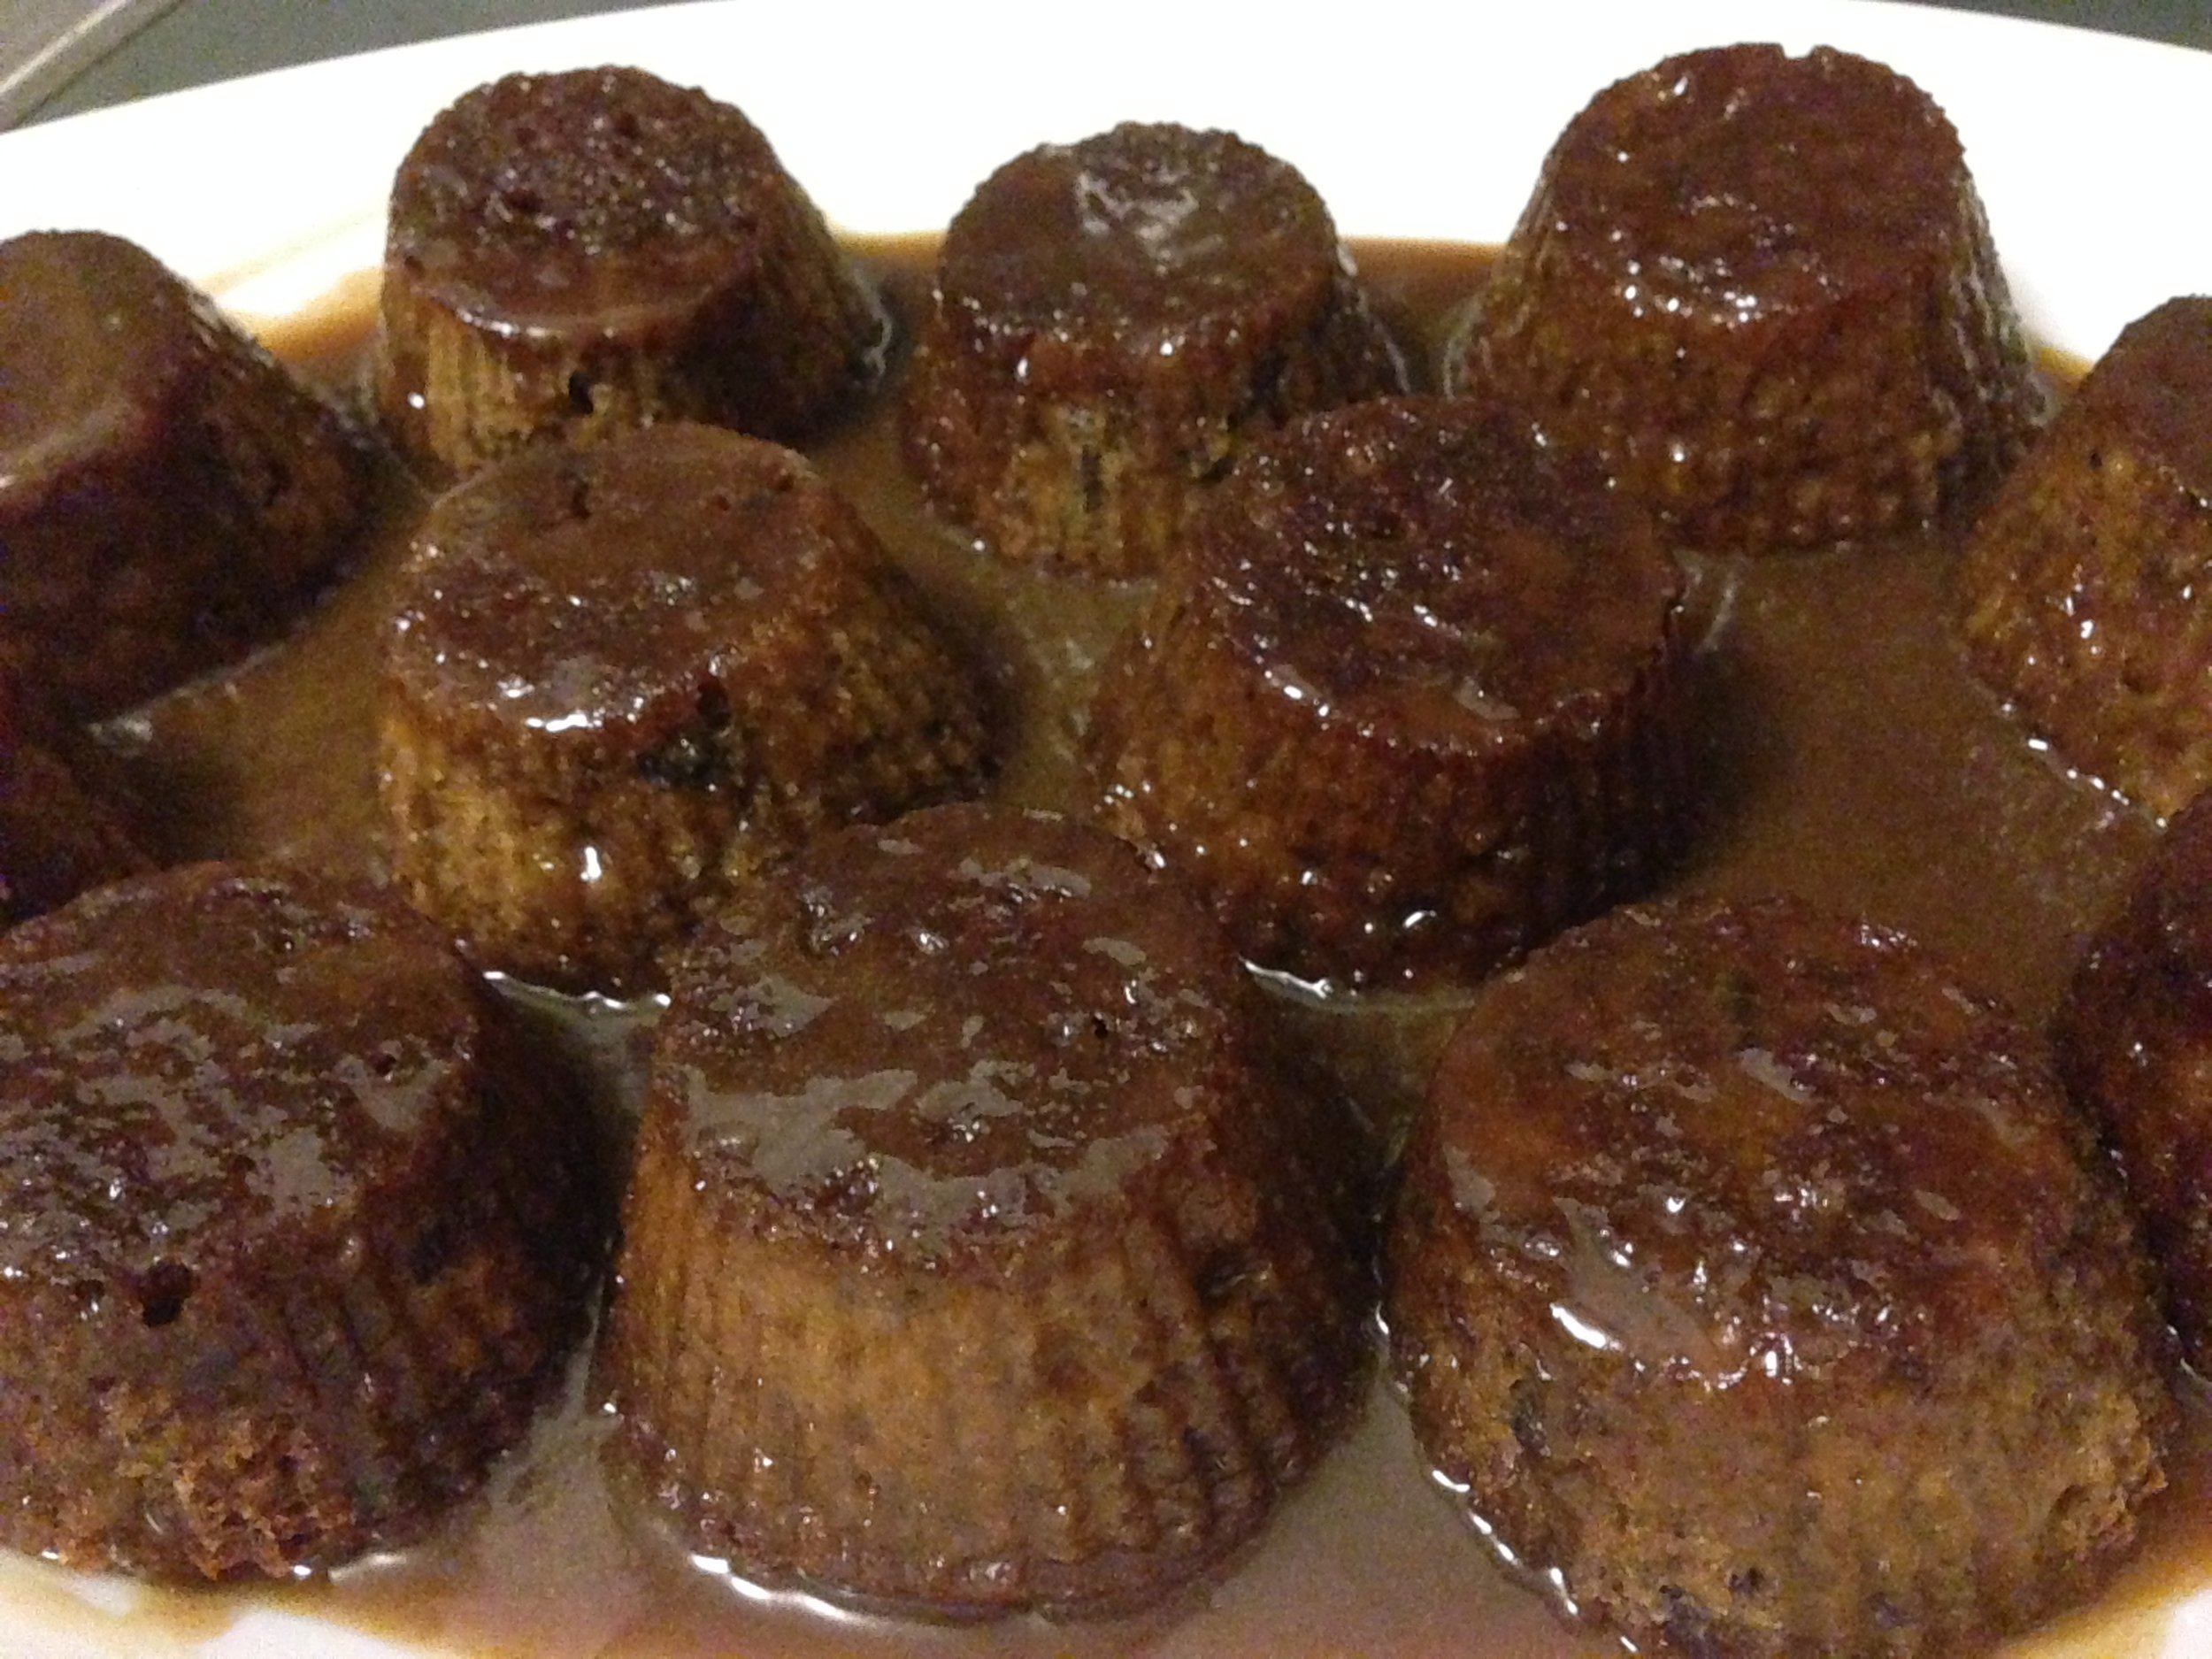 Sticky Toffee Date Cake - Ready to serve!